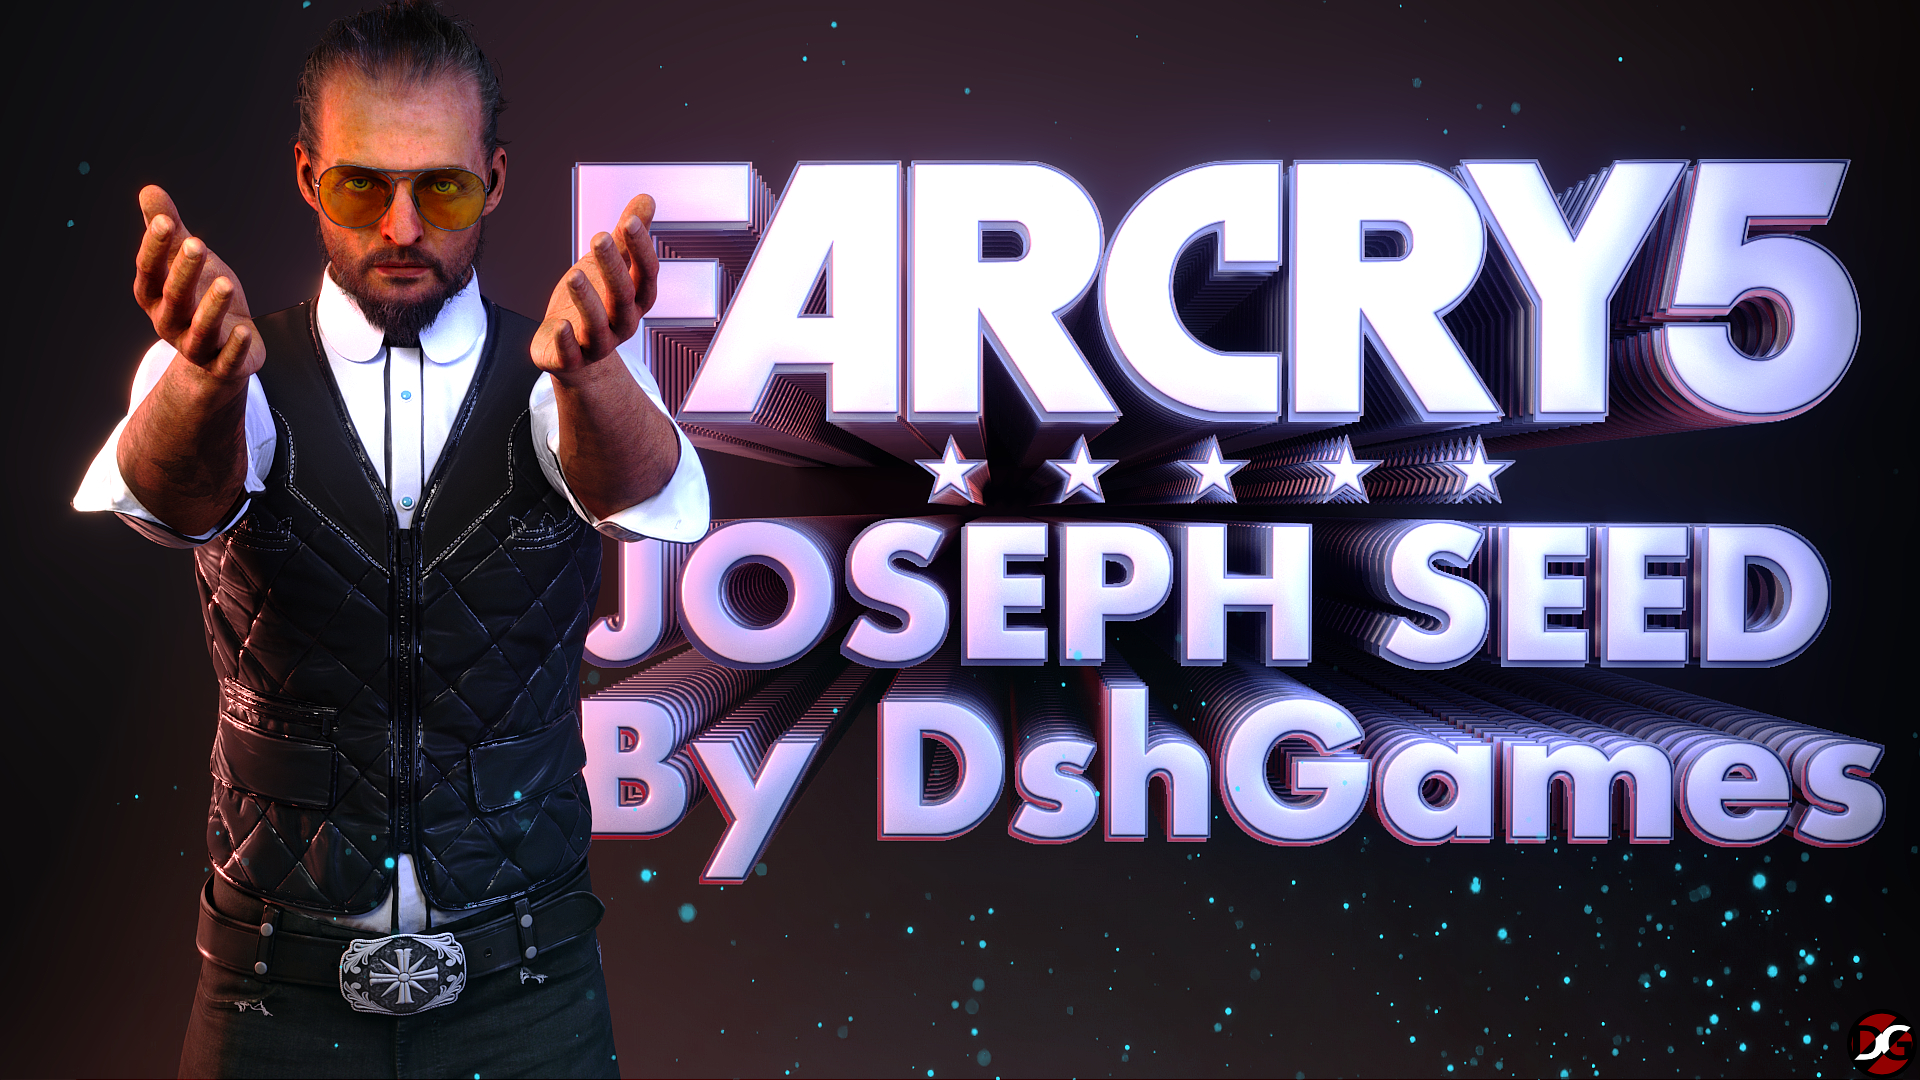 Joseph Seed Far Cry 5 GTA San Andreas